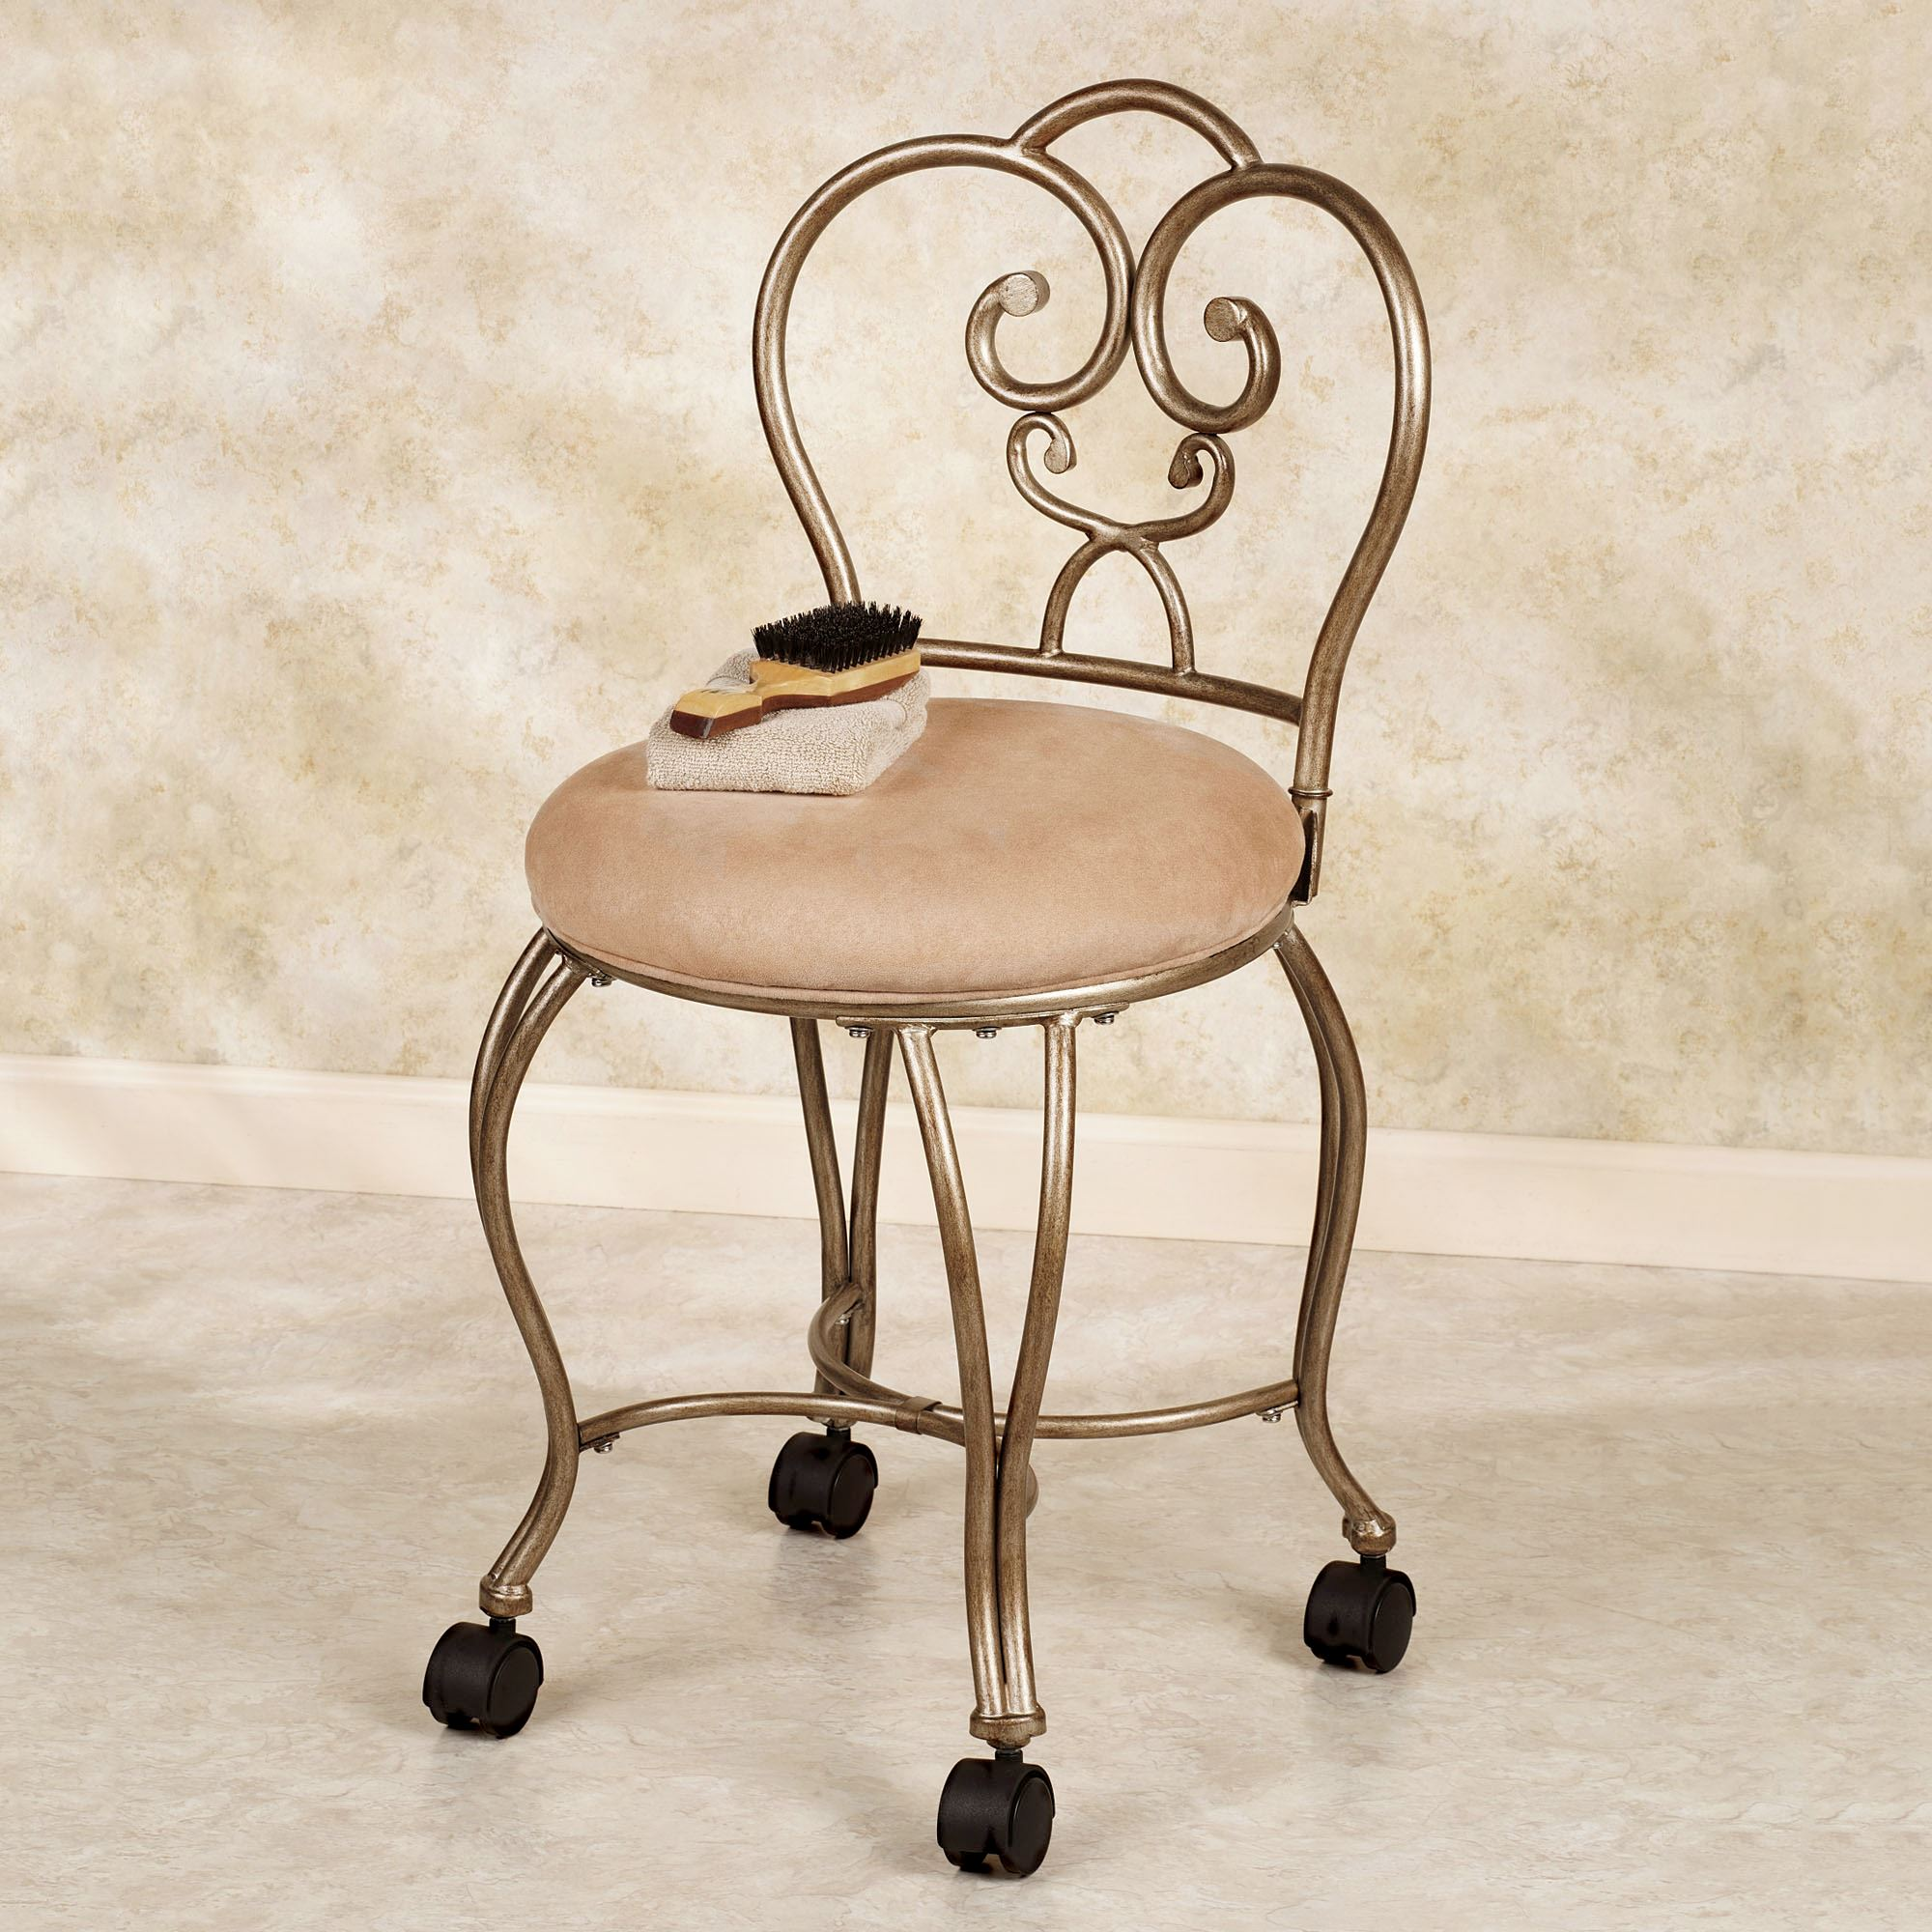 Delicieux Lecia Vanity Chair. Touch To Zoom